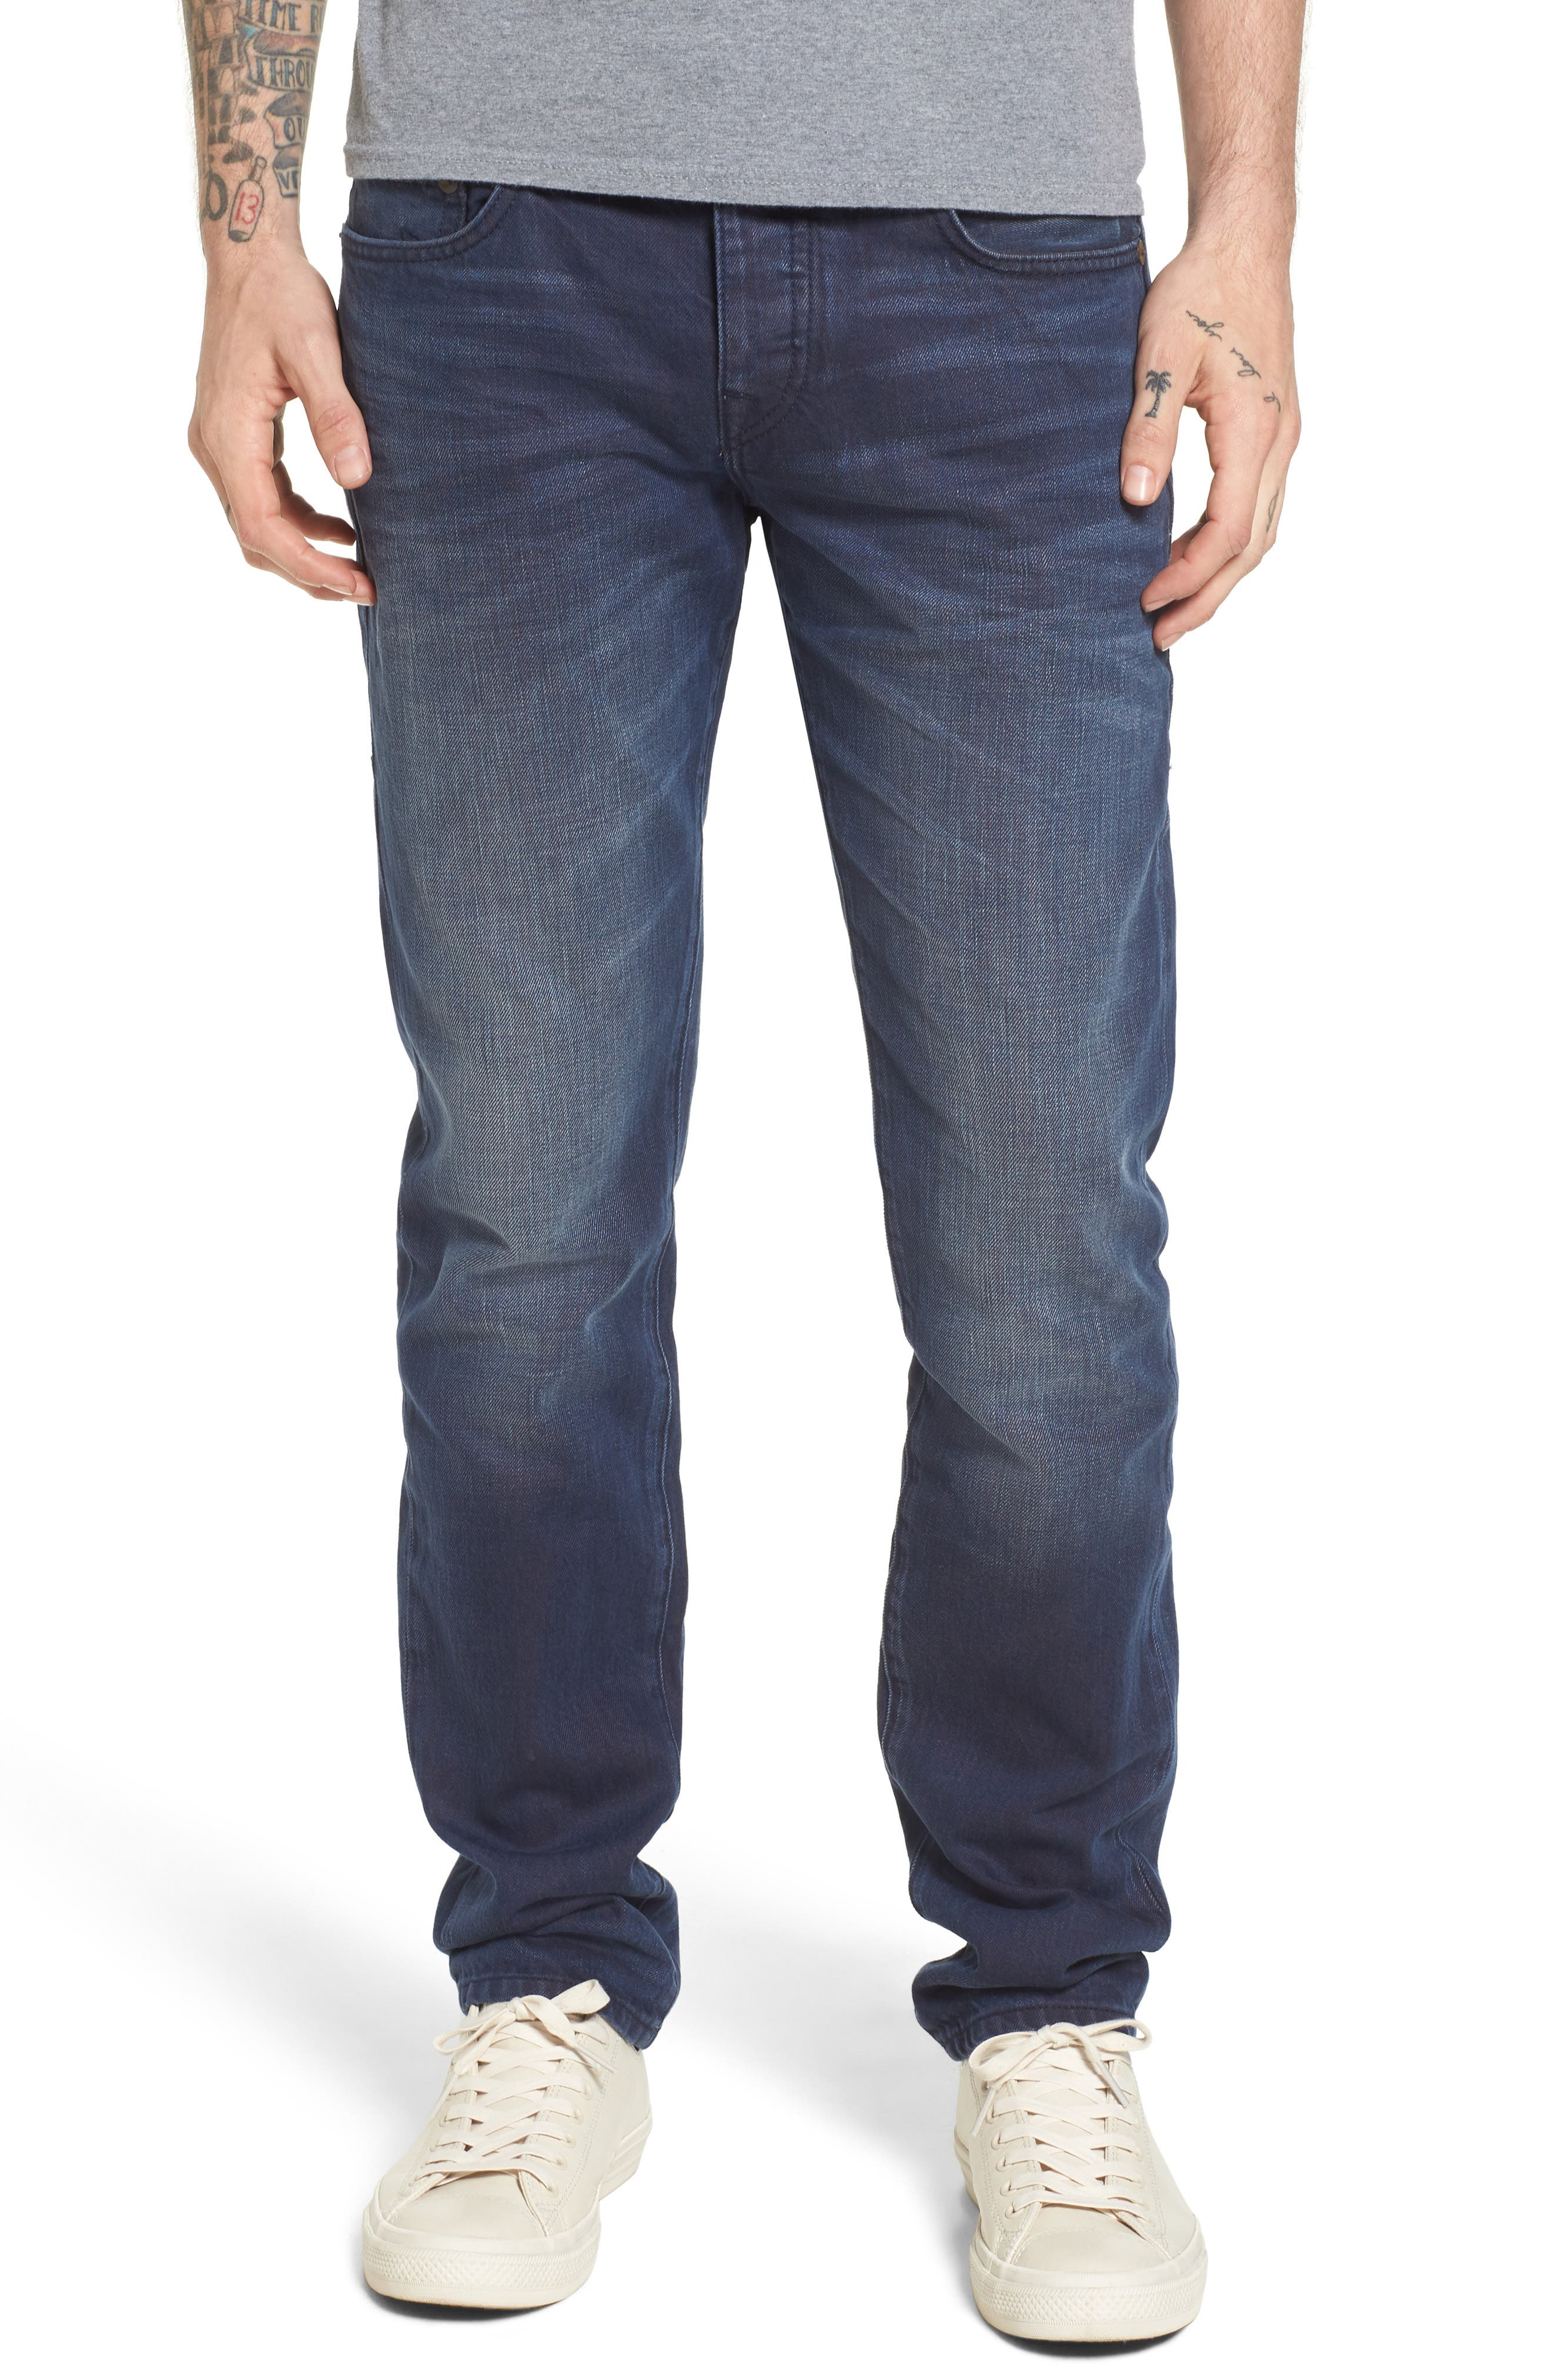 Rocco Skinny Fit Jeans,                         Main,                         color, Blue Mariner